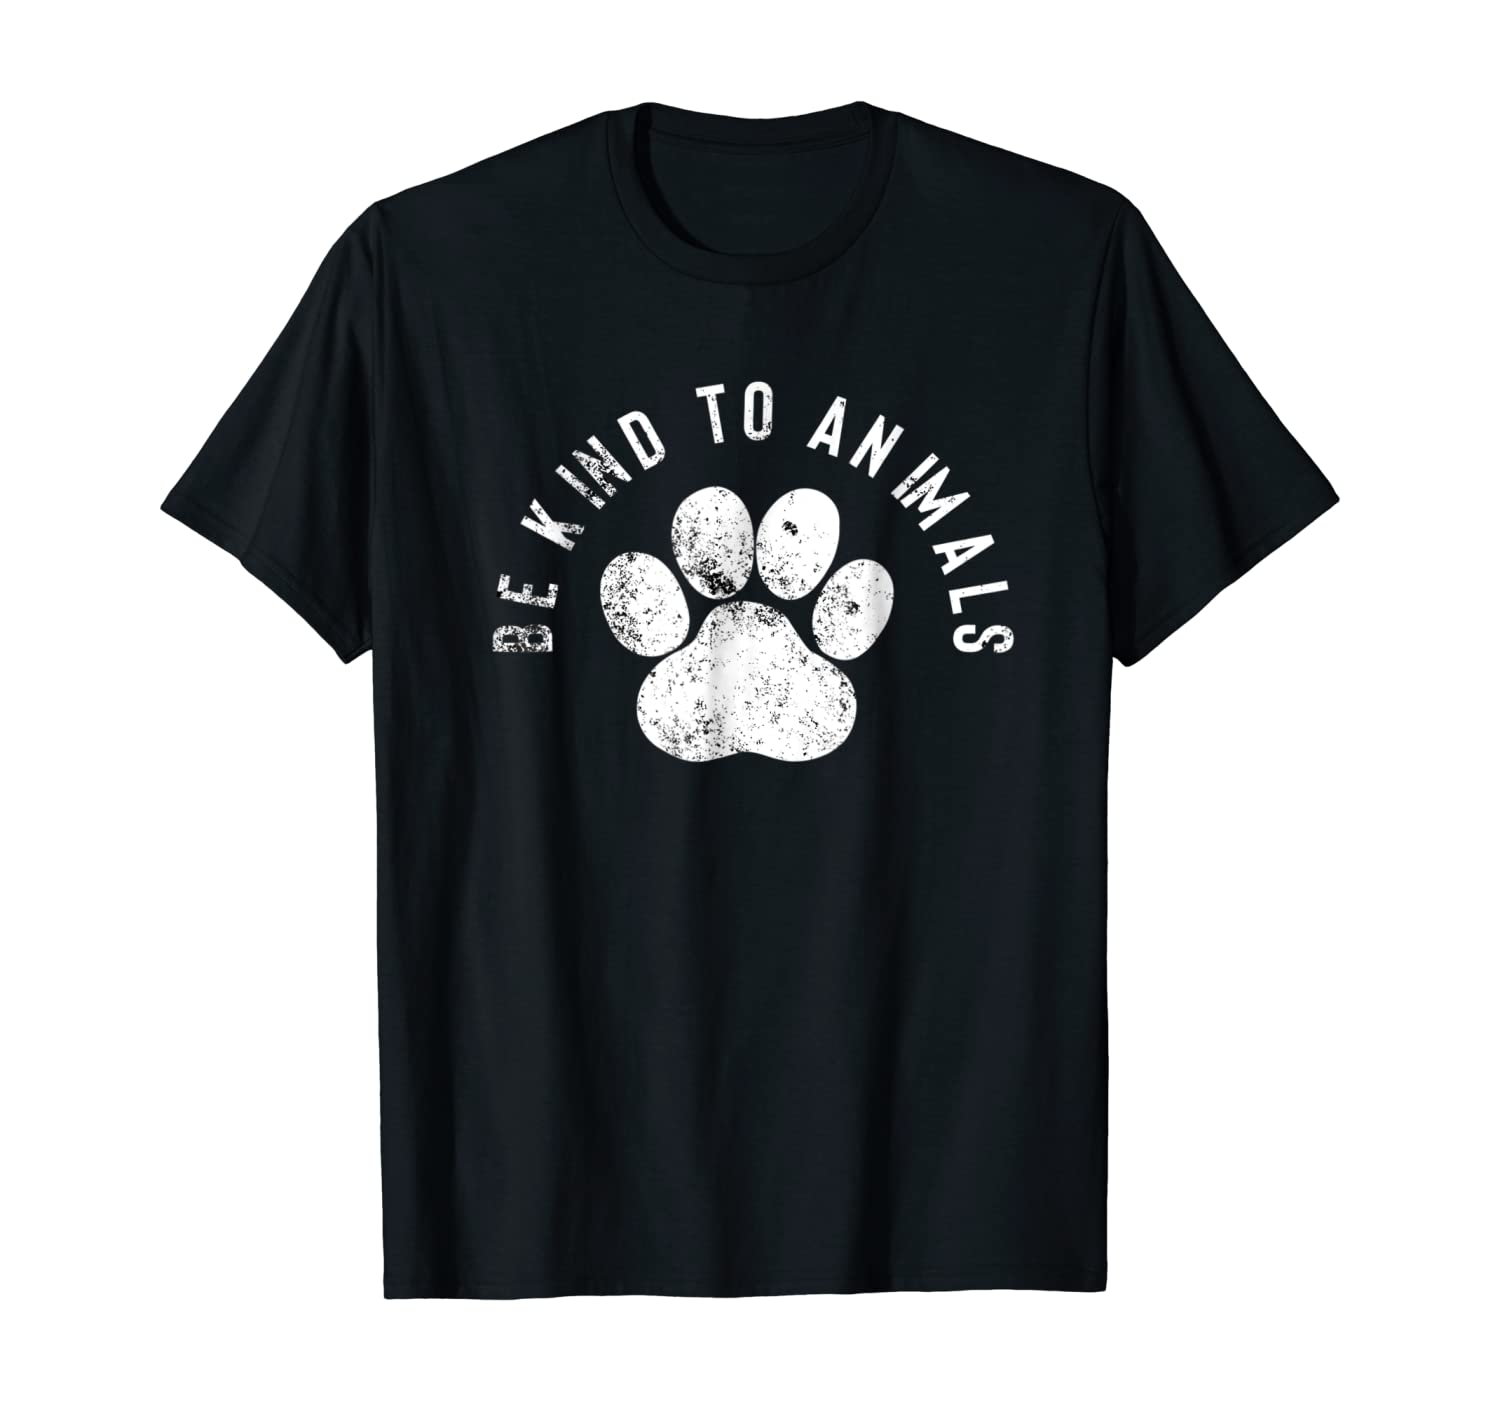 Amazon Com Be Kind To Animals Animal Rights T Shirt Clothing